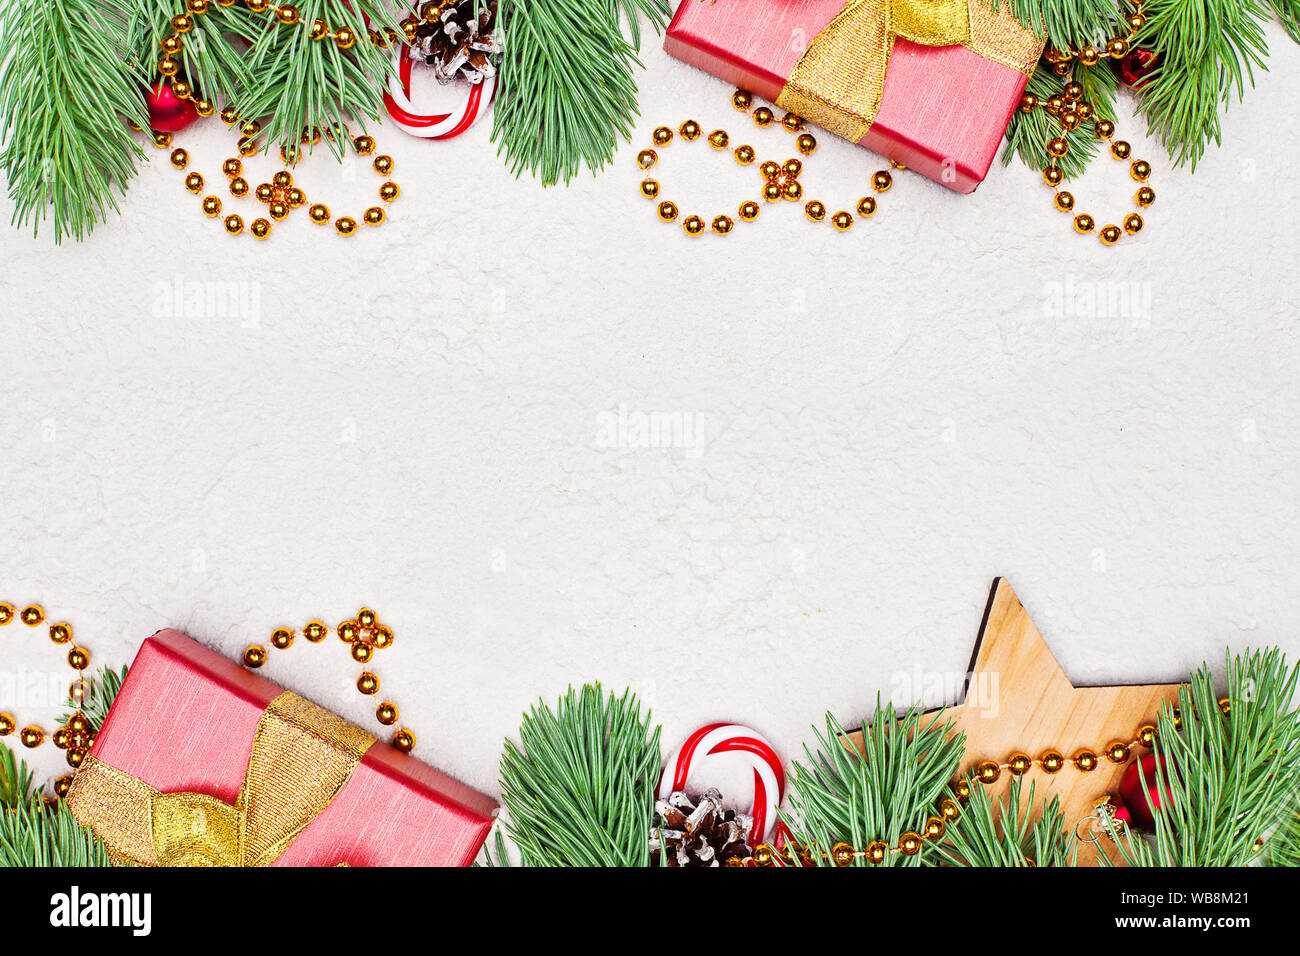 Christmas Card Border.Christmas Card Composition Border Gold Garland Green Xmas